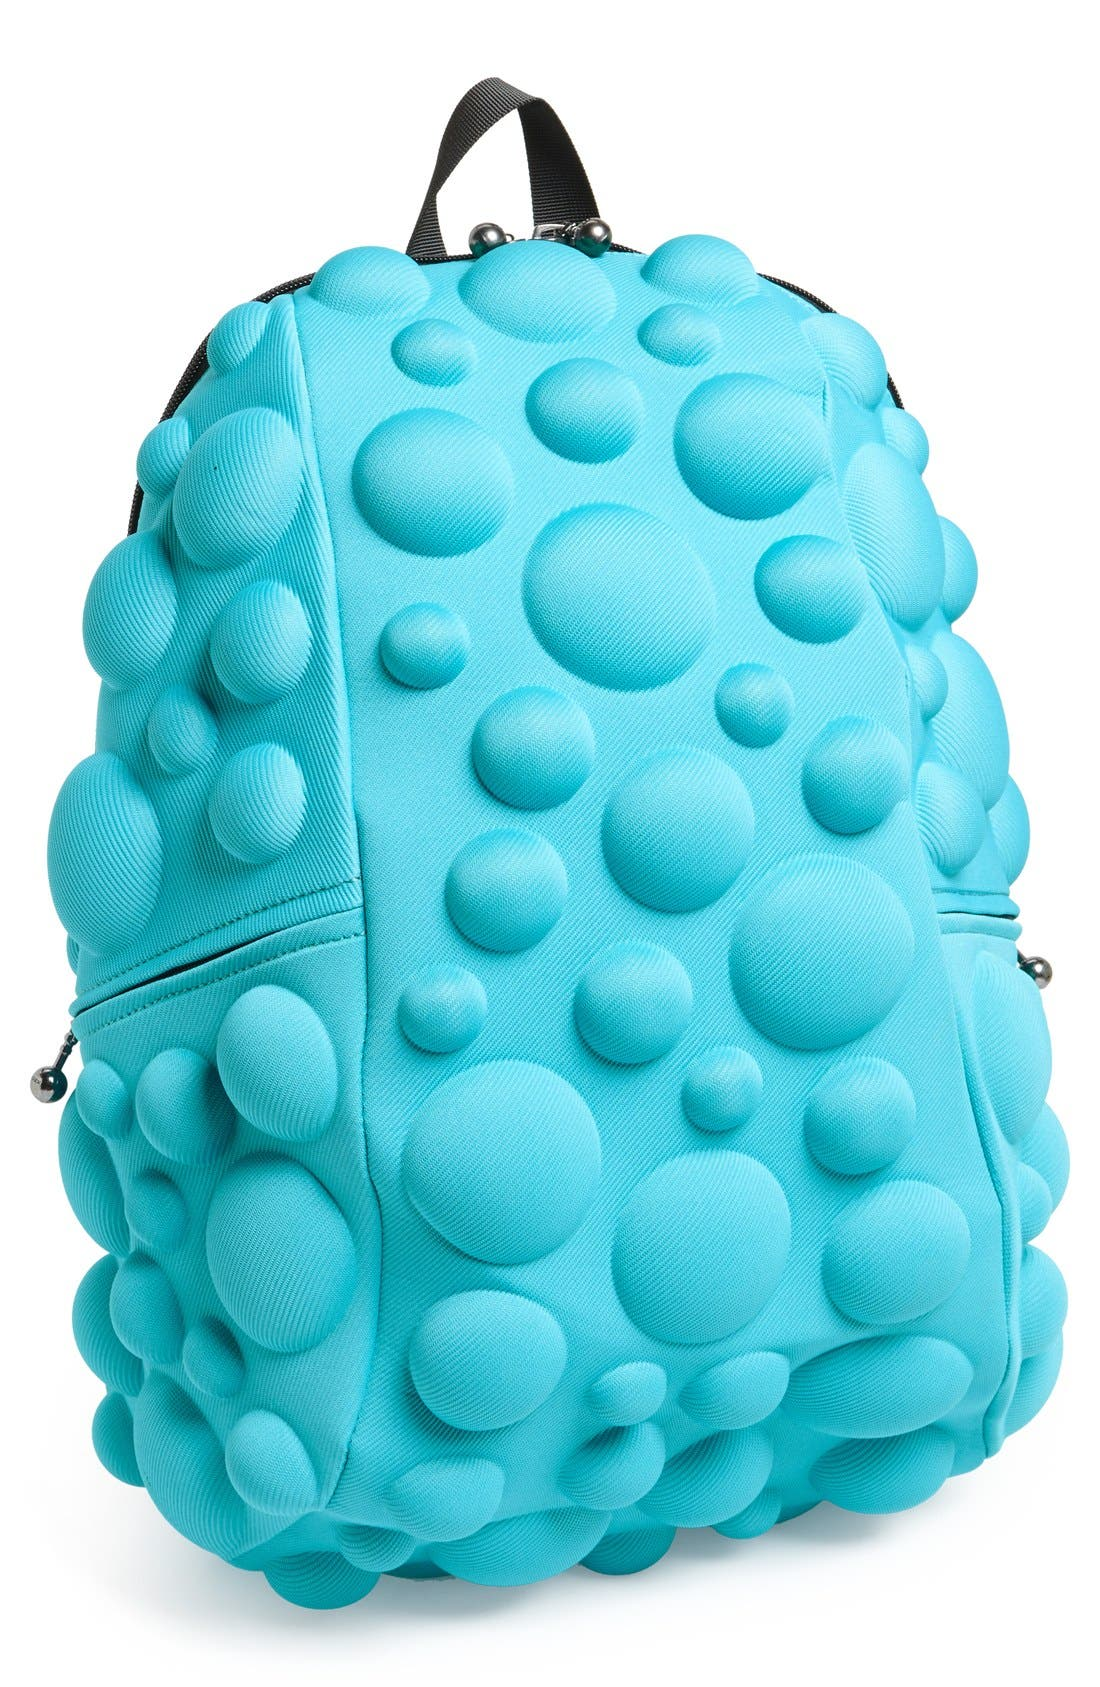 Alternate Image 1 Selected - MadPax Bubble Backpack (Girls)